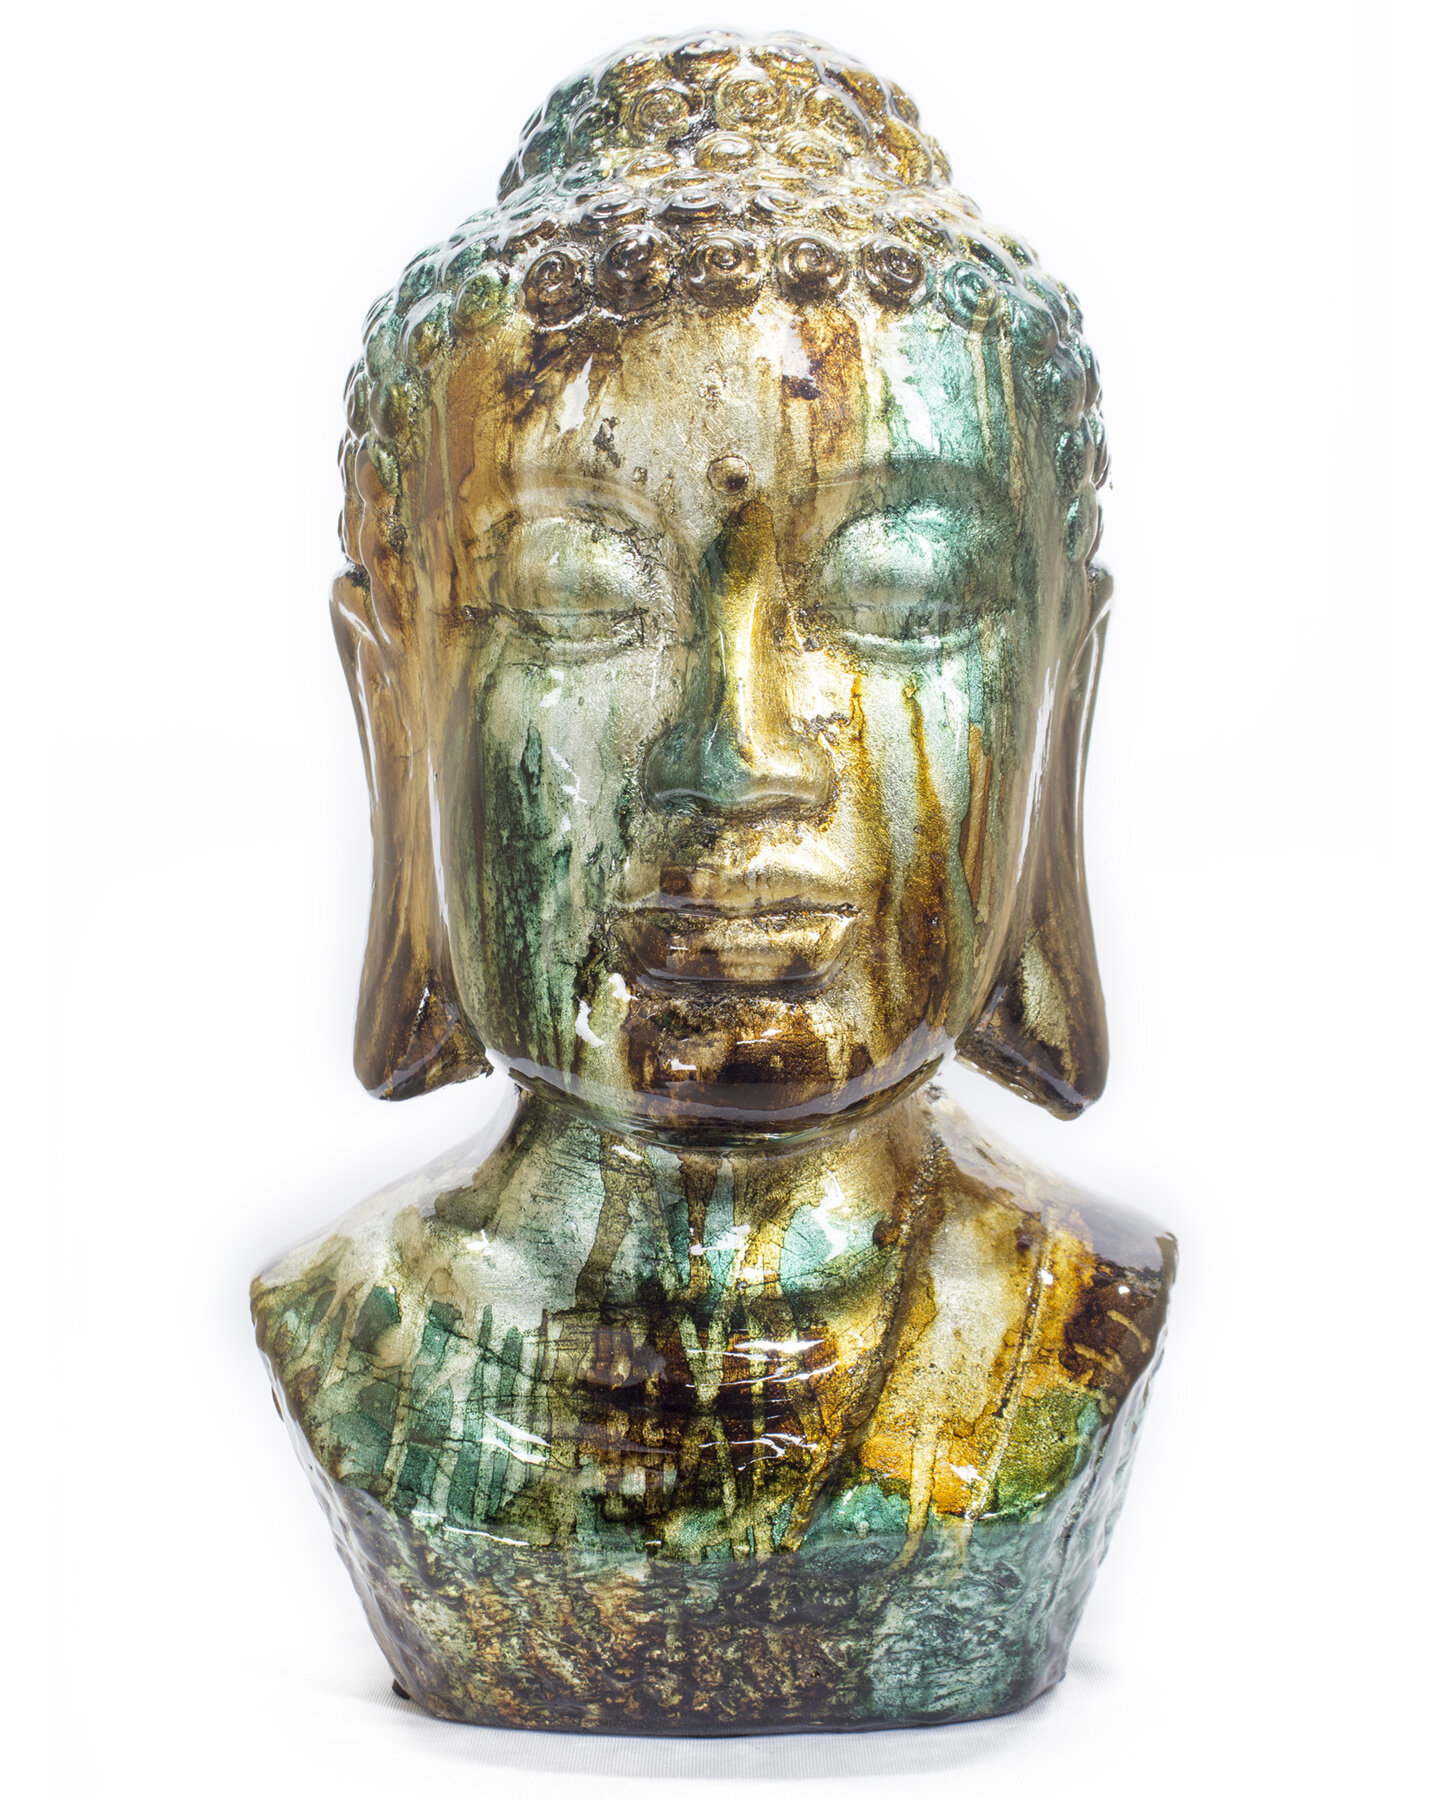 Camdenton Foiled And Lacquered Buddha Head Decorative Sculpture